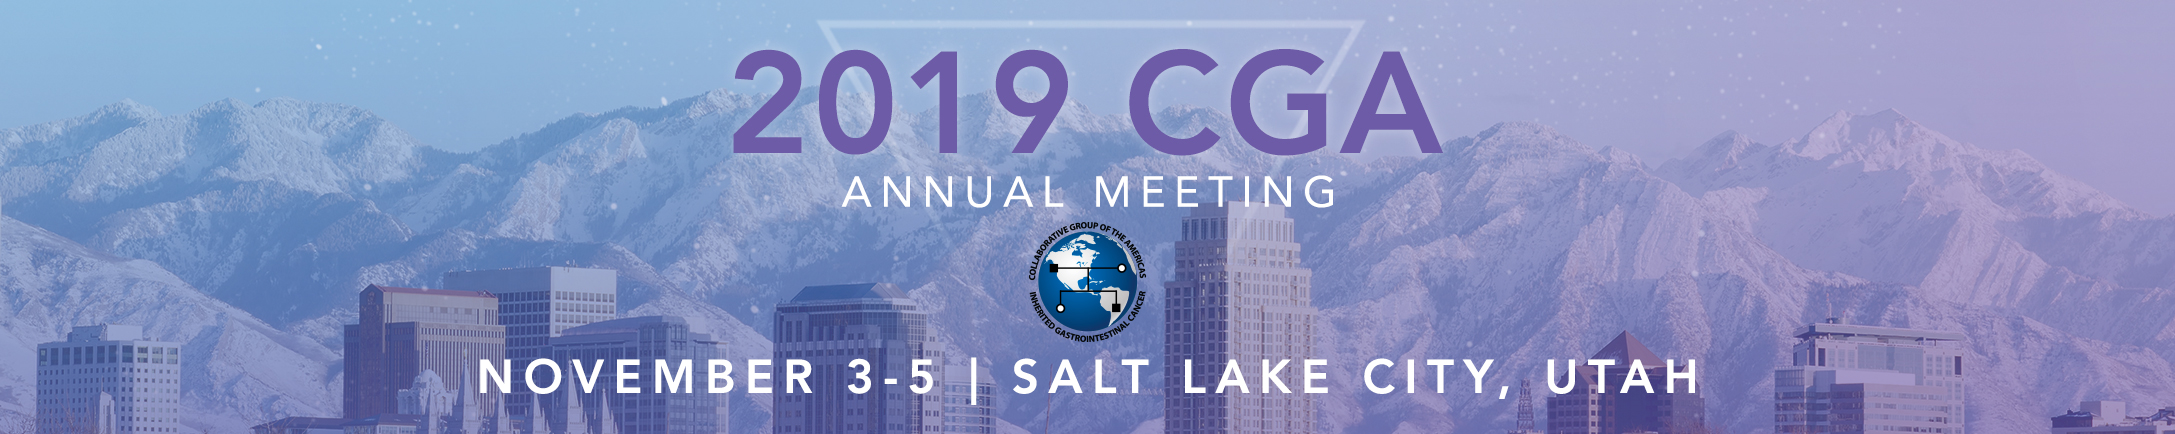 2019 CGA Annual Meeting